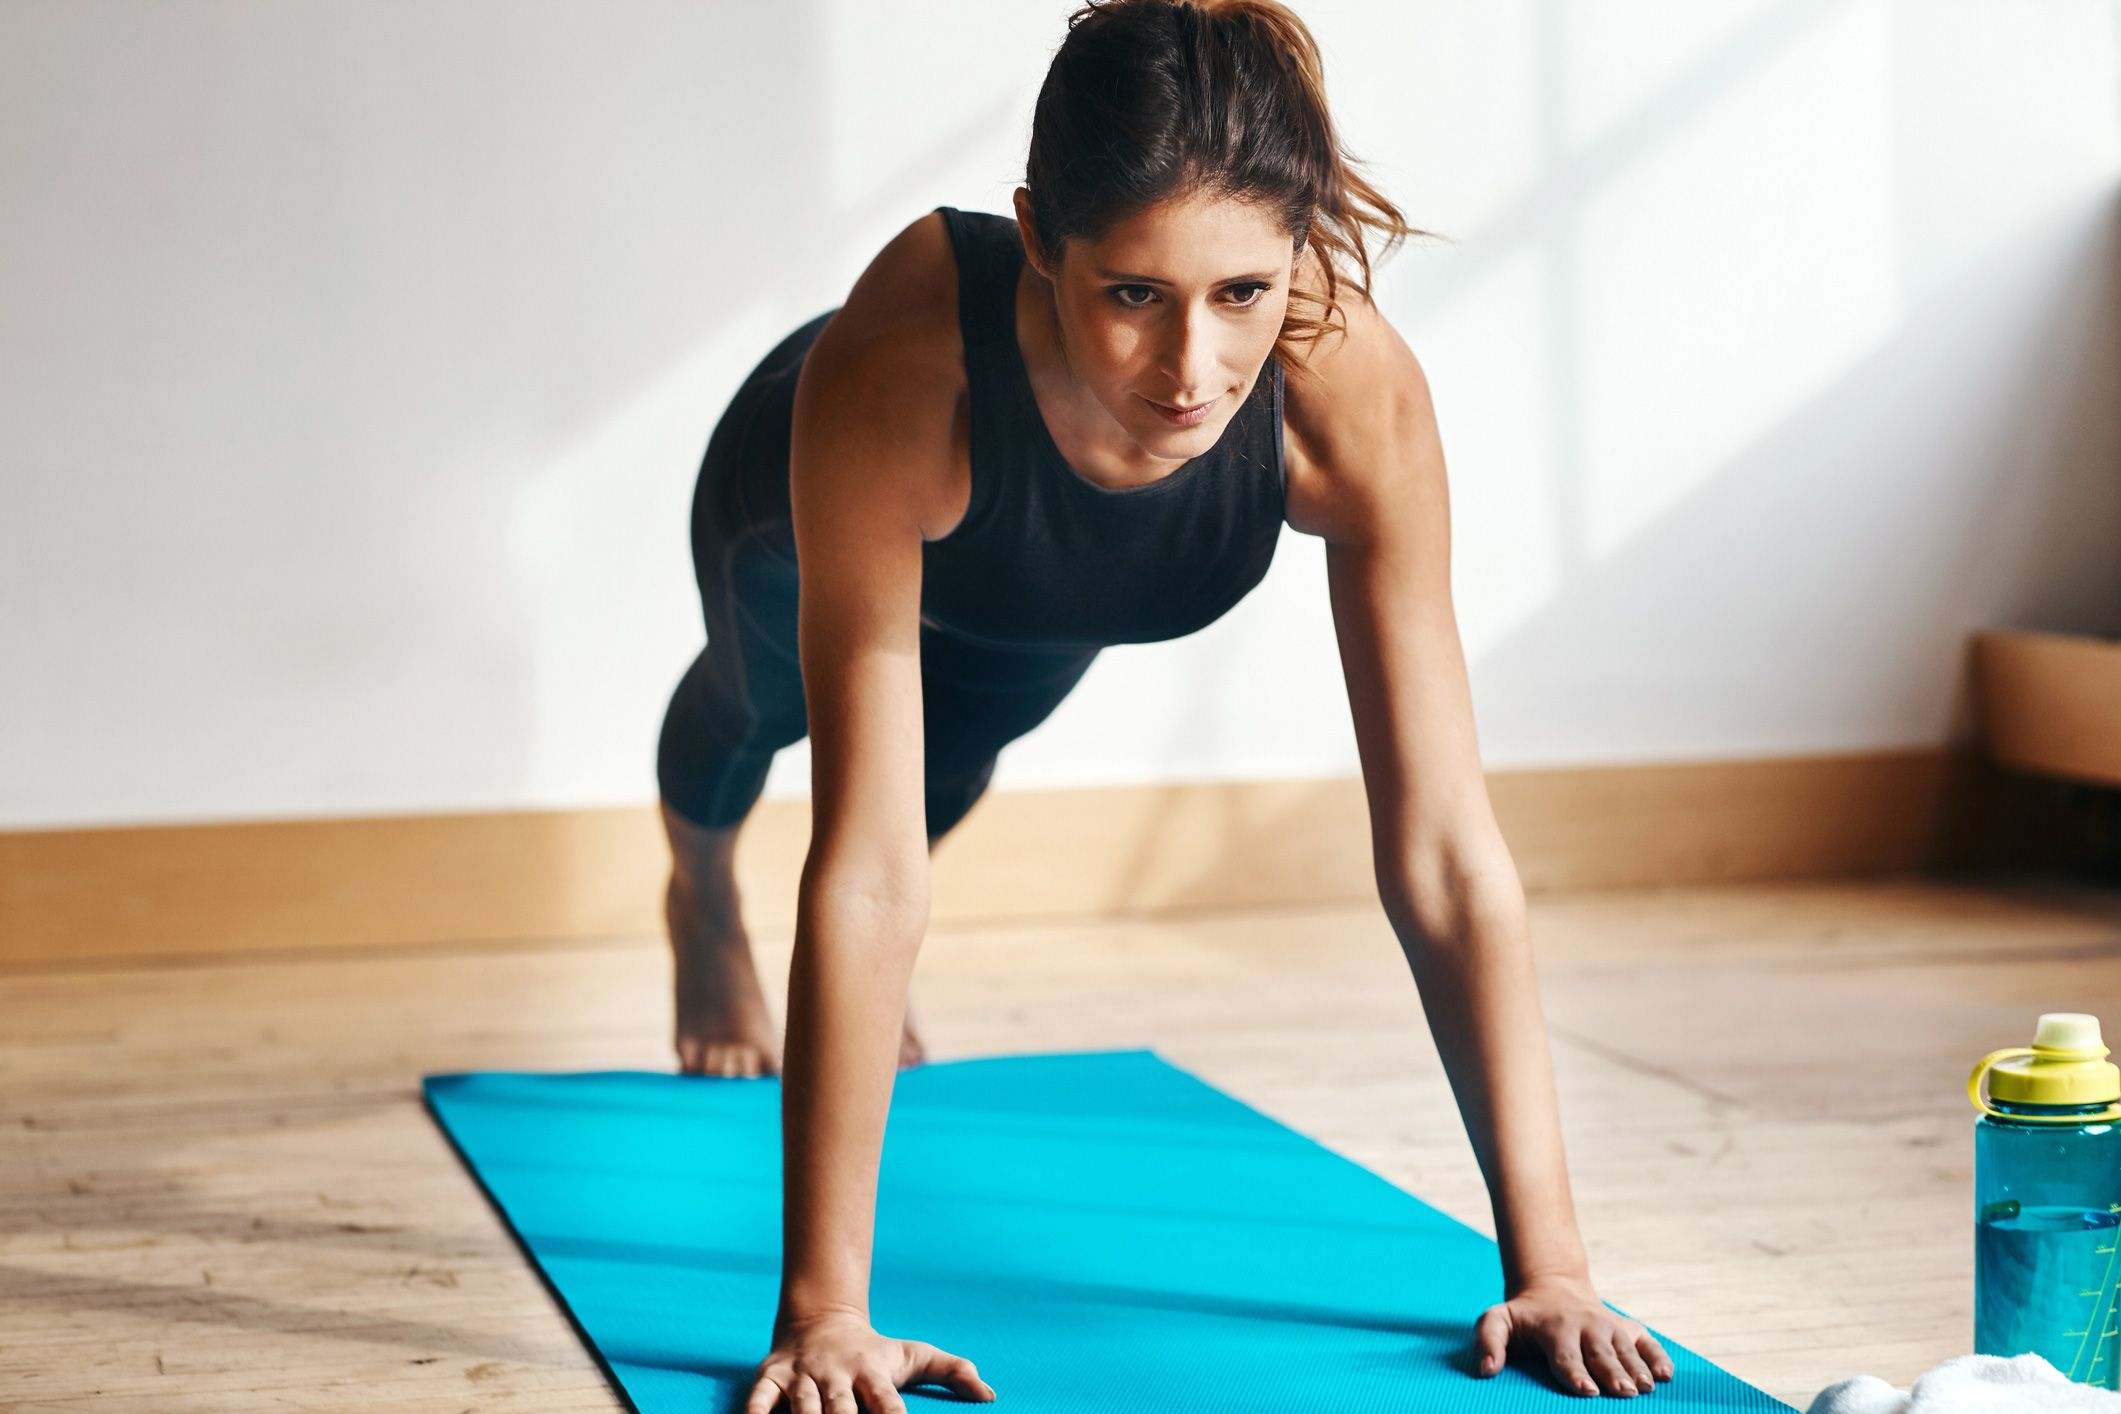 joe wicks cardio shred you can do at homejoe wicks cardio shred has only 5 moves and can be done at home